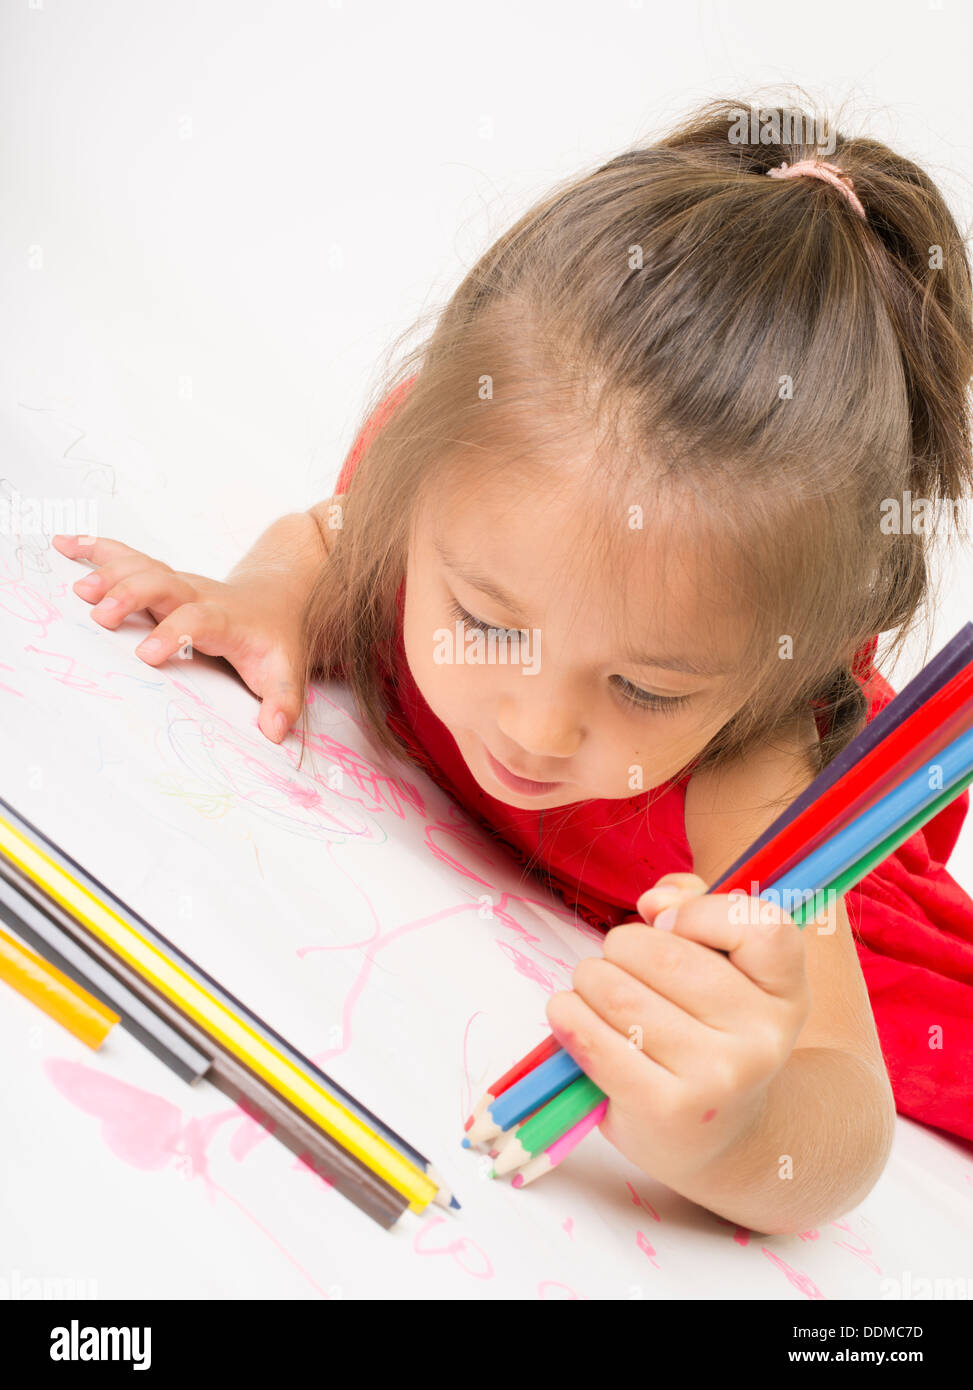 Young girl coloring with colored pencils Stock Photo: 60070289 - Alamy